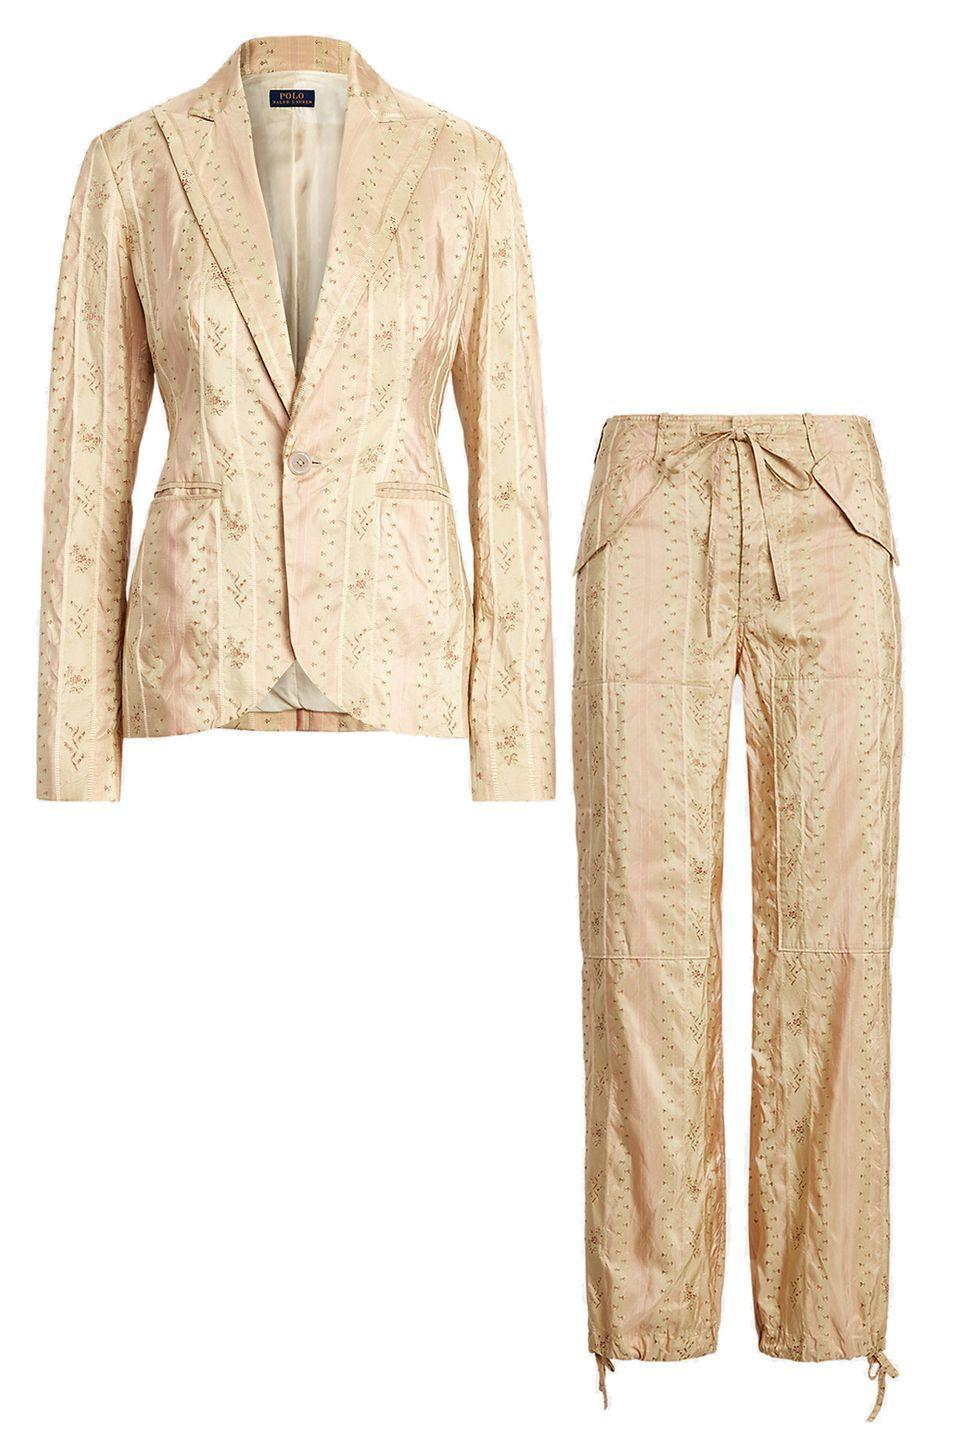 """<p>If white isn't flattering on your complexion, consider this luxurious floral silk tapestry set from Ralph Lauren, which reflects a warm glow. Cinch the drawstrings at the ankles for a more fitted look.<br></p><p><a href=""""https://go.skimresources.com?id=74968X1525087&xs=1&url=https%3A%2F%2Fwww.ralphlauren.com%2Fwomen-clothing-blazers%2Ffloral-silk-blend-blazer%2F532604.html%3Fdwvar532604_colorname%3DPink%2520Floral%26cgid%3Dwomen-clothing-blazers%26webcat%3DWomen%252FClothing%252FBlazers%23webcat%3Dwomen%25257Cclothing%25257CBlazers%26start%3D1%26cgid%3Dwomen-clothing-blazers"""" rel=""""nofollow noopener"""" target=""""_blank"""" data-ylk=""""slk:Ralph Lauren Blazer"""" class=""""link rapid-noclick-resp""""><br>Ralph Lauren Blazer</a><a href=""""https://go.skimresources.com?id=74968X1525087&xs=1&url=https%3A%2F%2Fwww.ralphlauren.com%2Fwomen-clothing-pants%2Ffloral-silk-blend-cargo-pant%2F532598.html%3Fwebcat%3Dcompletethelook%26dwvar532598_colorname%3DPink%2520Floral%26pdpR%3Dy"""" rel=""""nofollow noopener"""" target=""""_blank"""" data-ylk=""""slk:Ralph Lauren Pant"""" class=""""link rapid-noclick-resp""""><br>Ralph Lauren Pant</a></p>"""